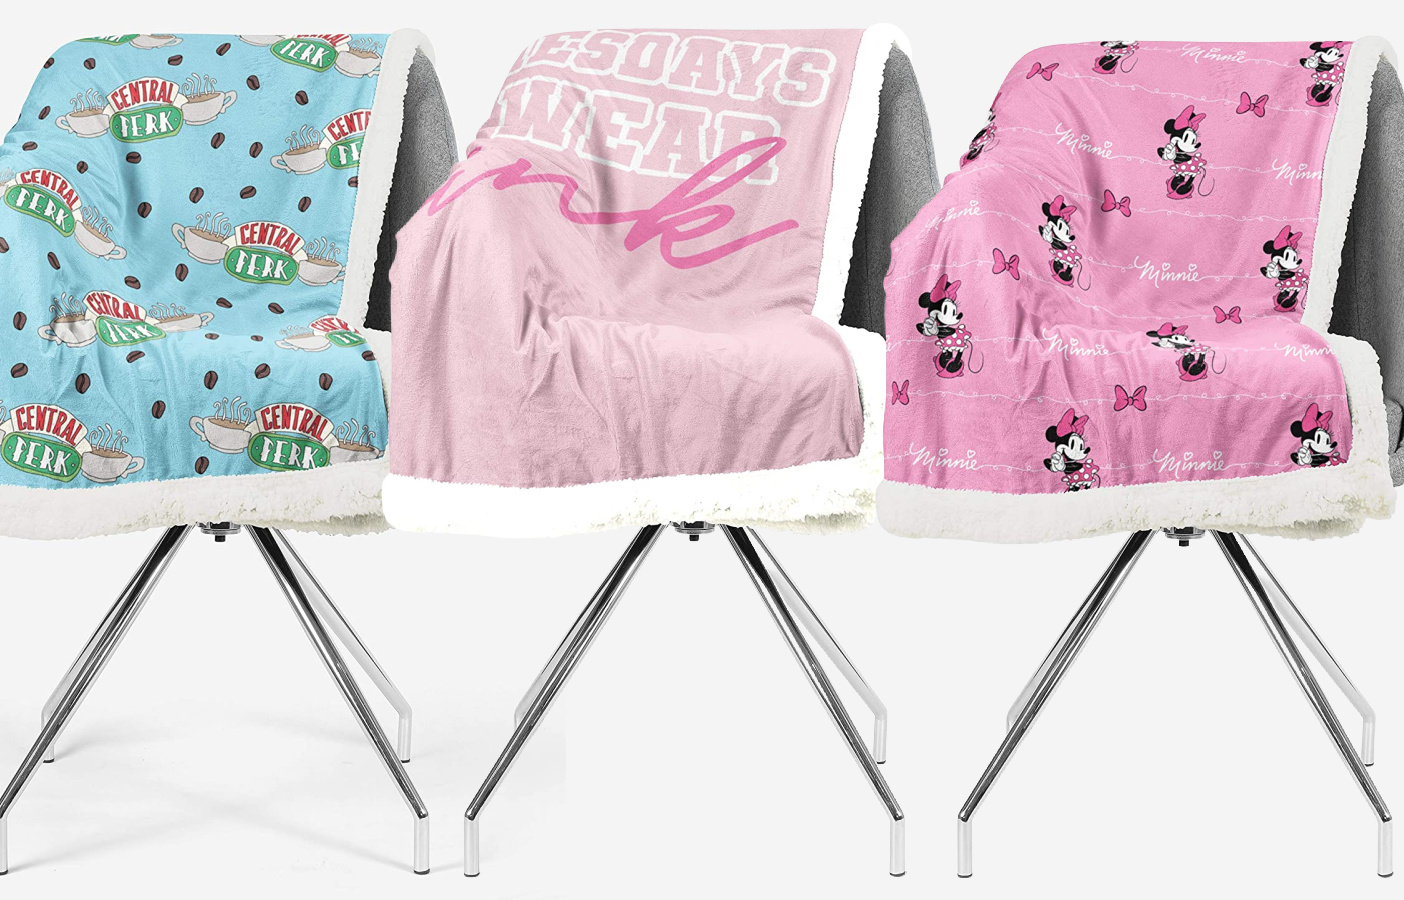 friends and mean girls sherpa blankets-2